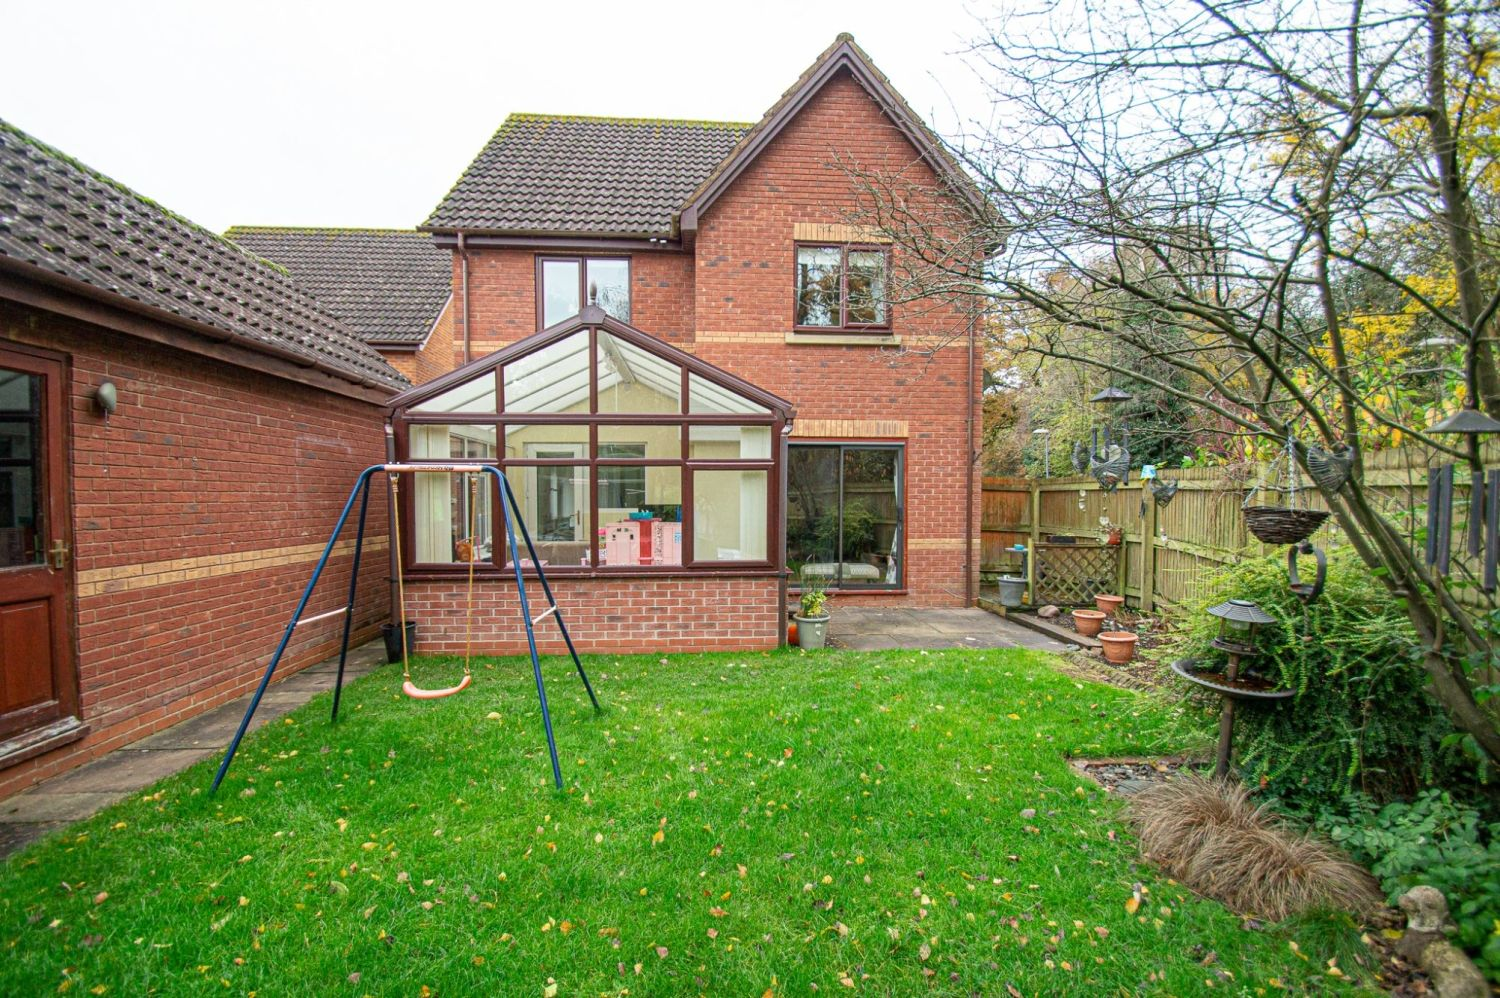 4 bed detached for sale in Harlech Close, Warndon Villages 16